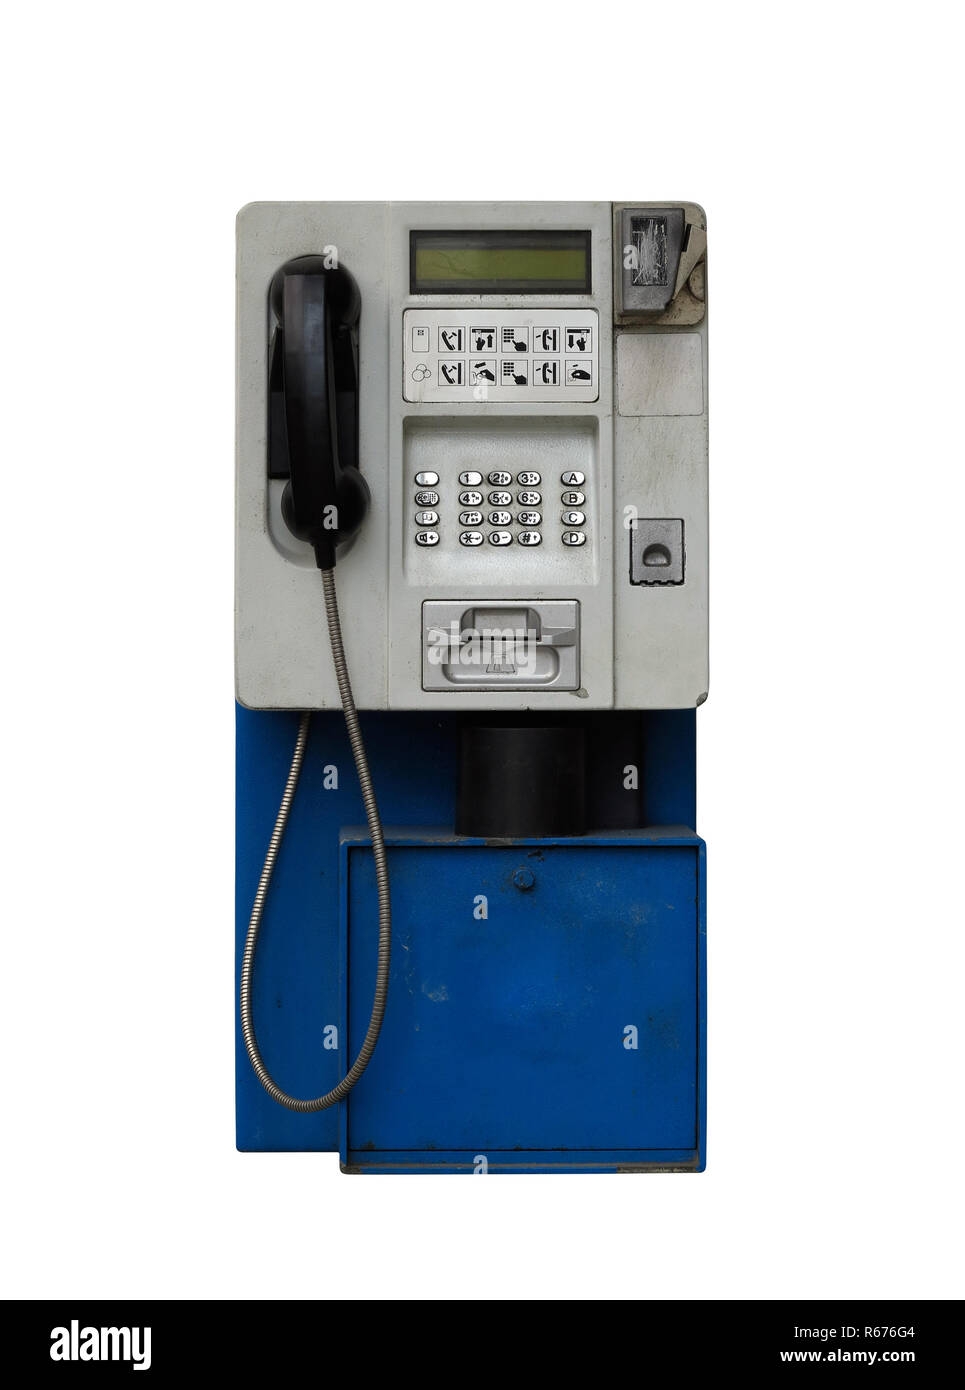 Old pay phone on white background - Stock Image